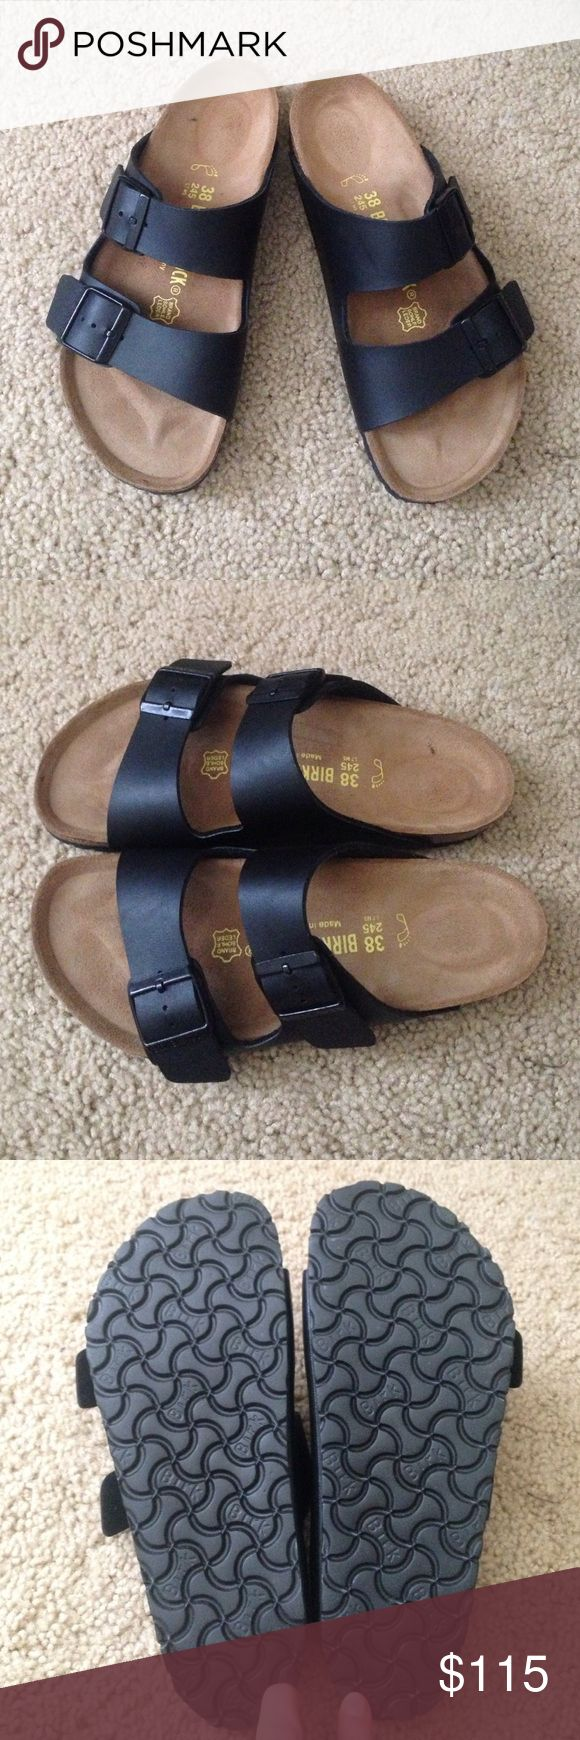 Black Birkenstock Sandals Great condition, authentic Birkenstock Sandals. Only wore once before admitting to myself that they are just too small! Birkenstock Shoes Sandals